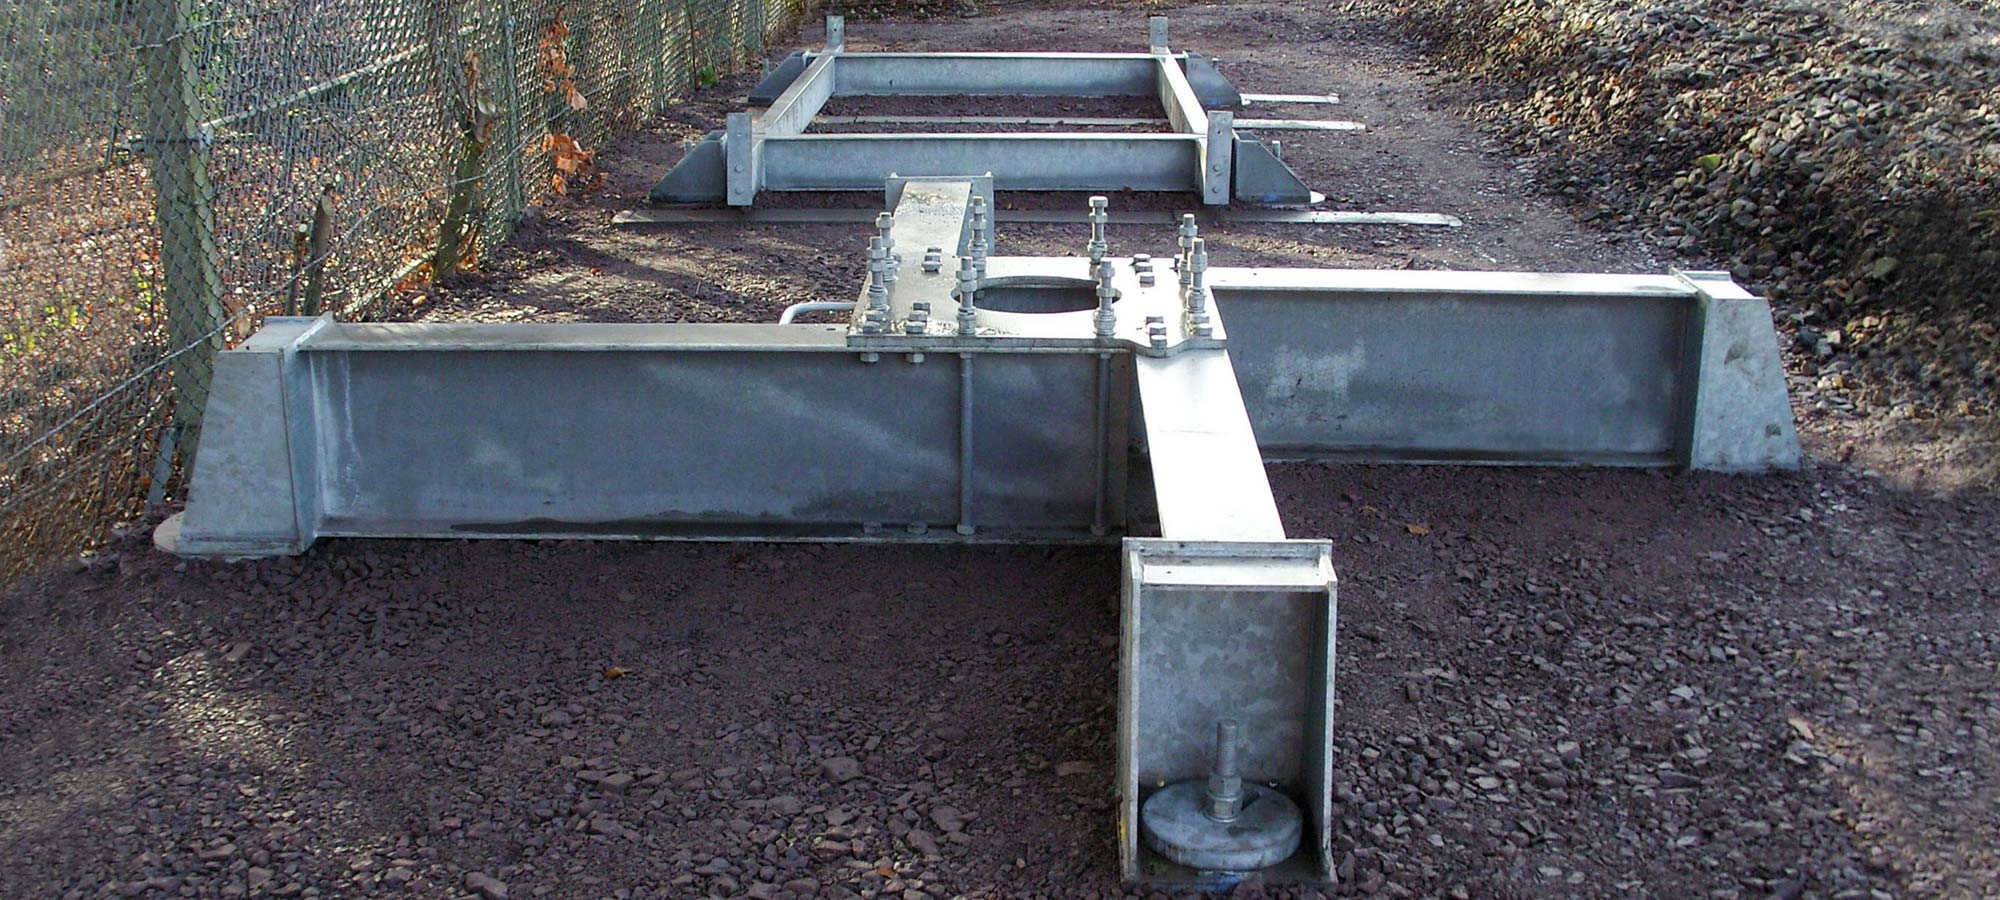 Steel Grillages for Rapid Deployment Foundations by FLI Structures